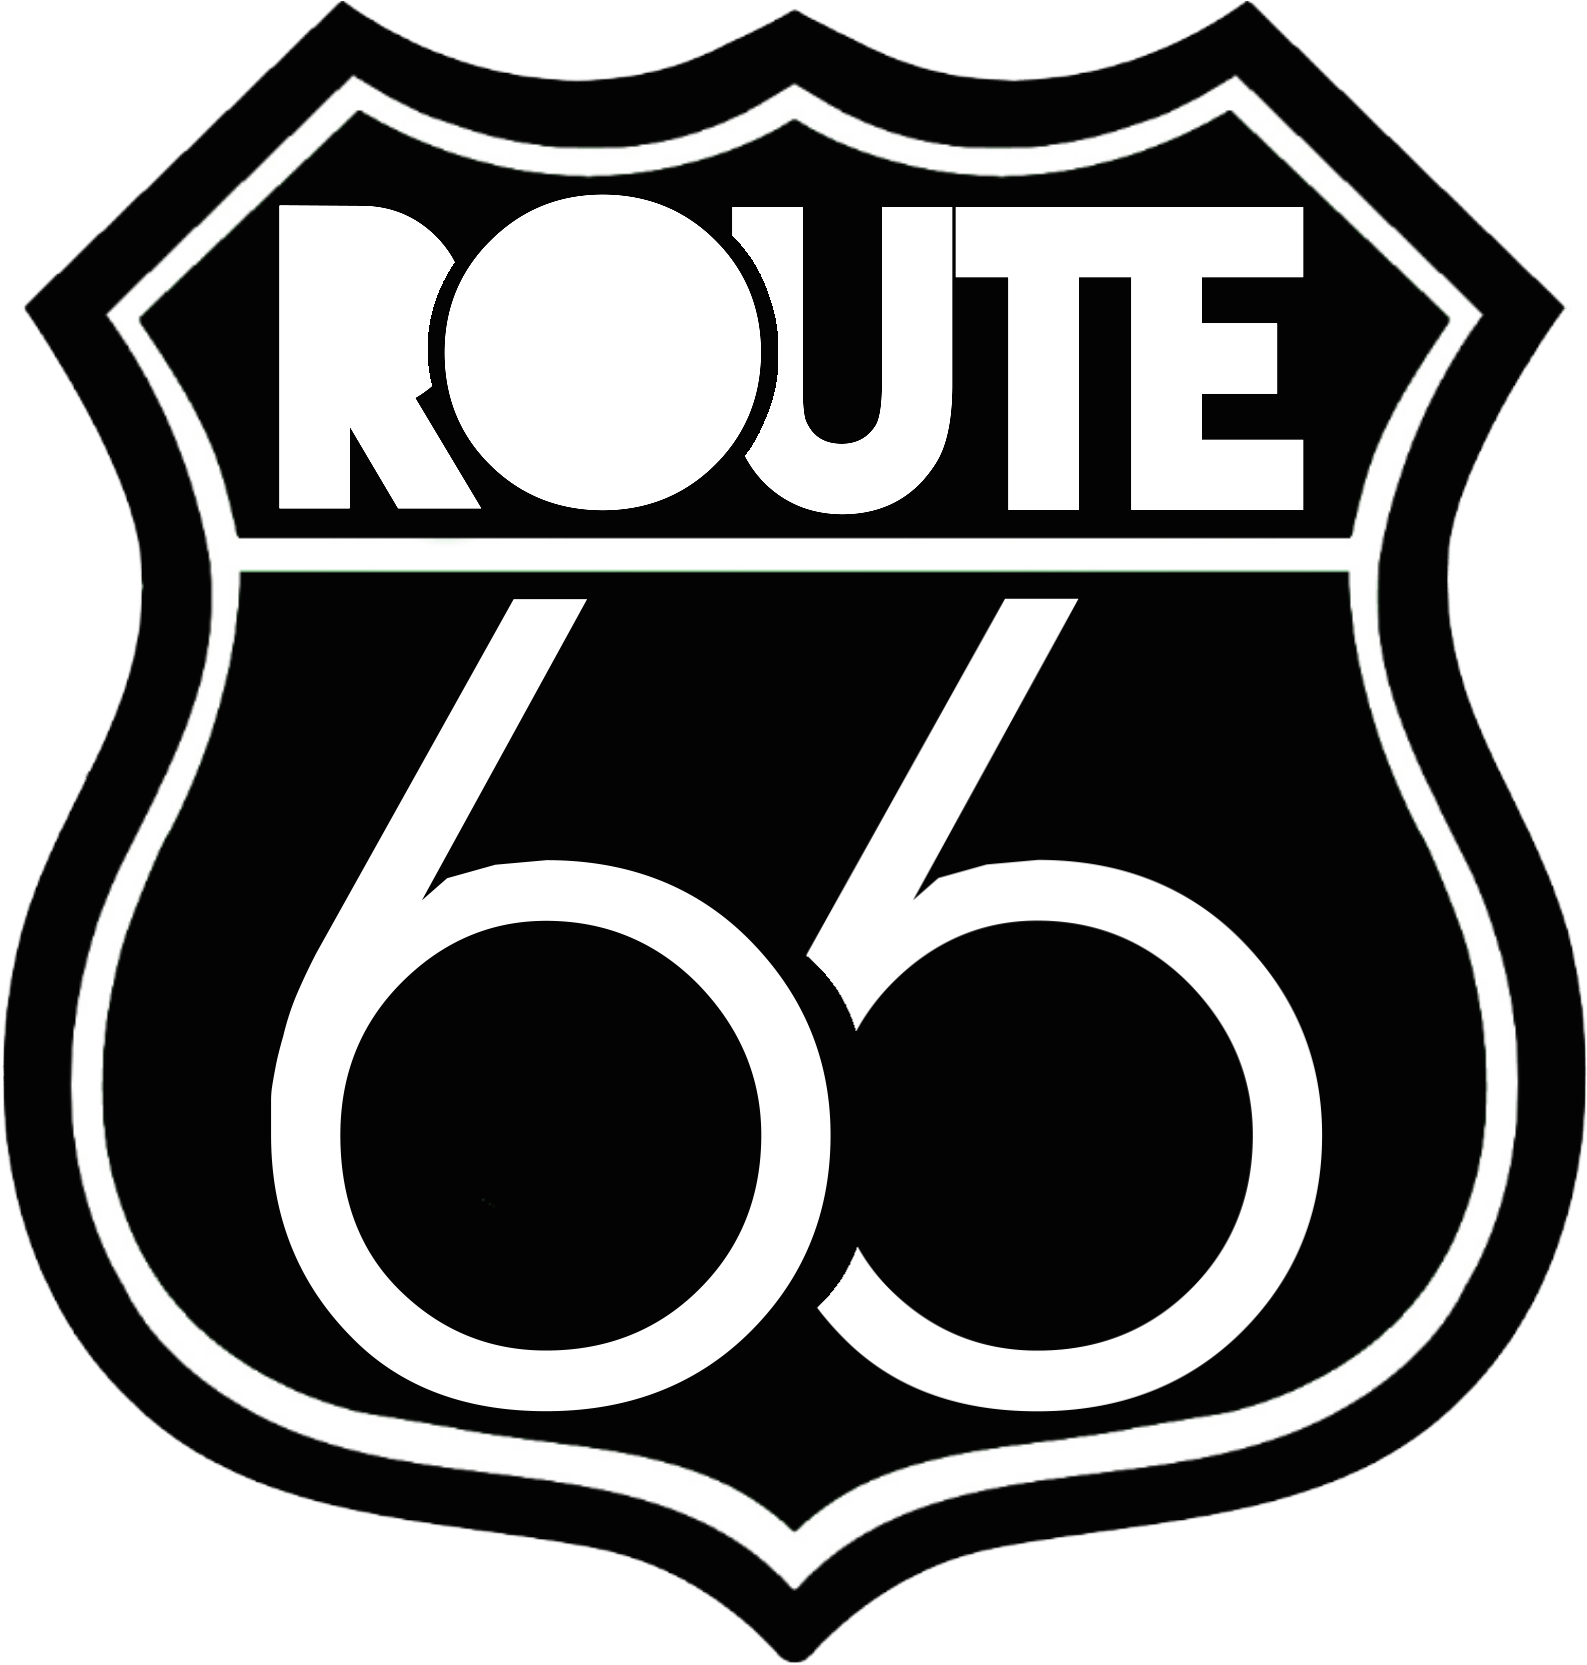 Route - Route 66 Icon Clipart - Full Size Clipart (#2142367) - PinClipart